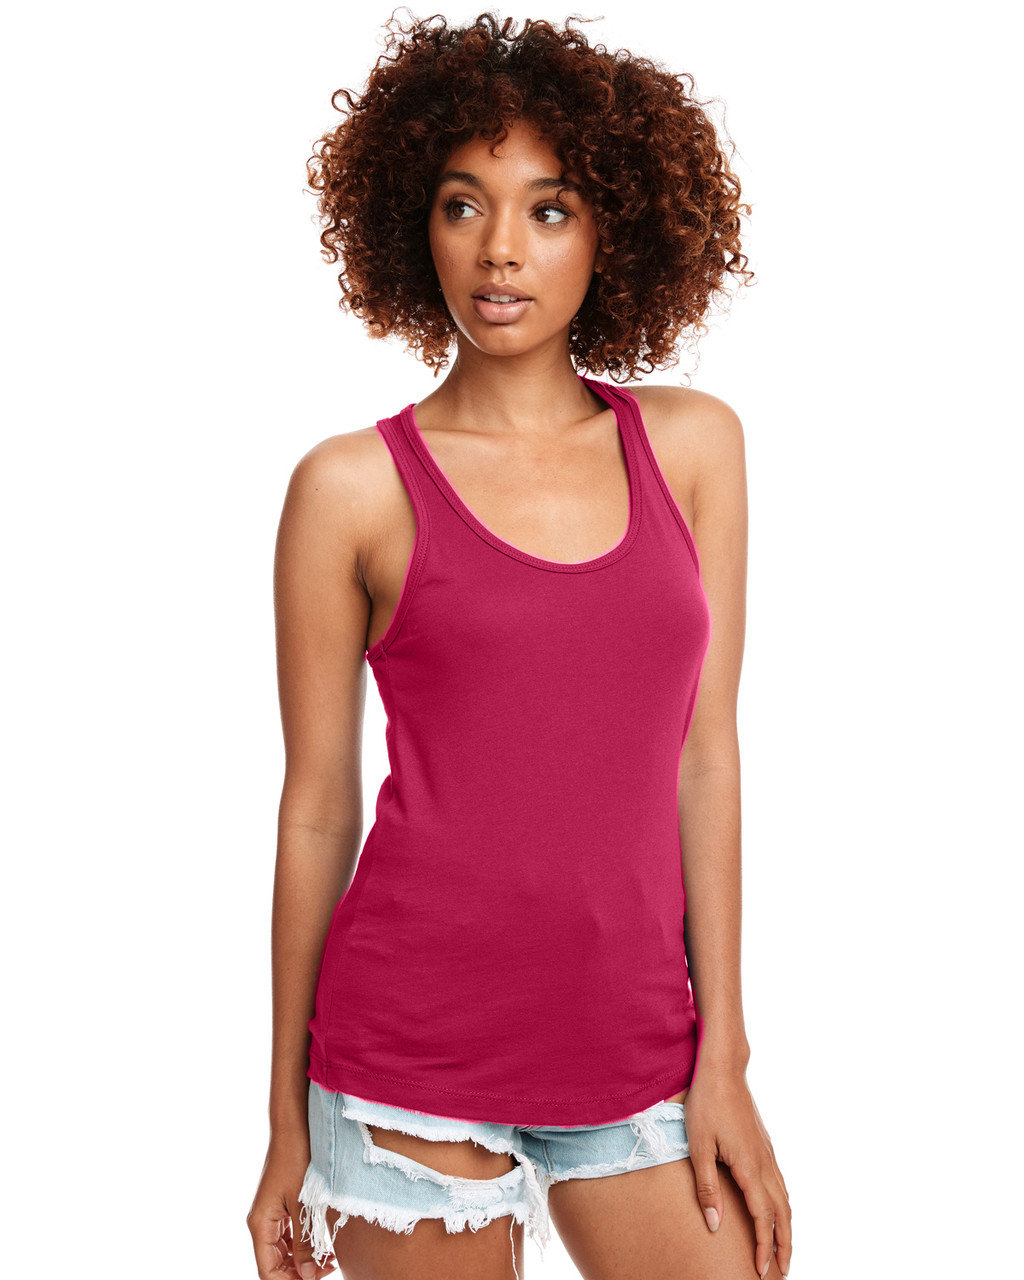 Raspberry - N1533 Next Level Ideal Racerback Tank Top | Blankclothing.ca